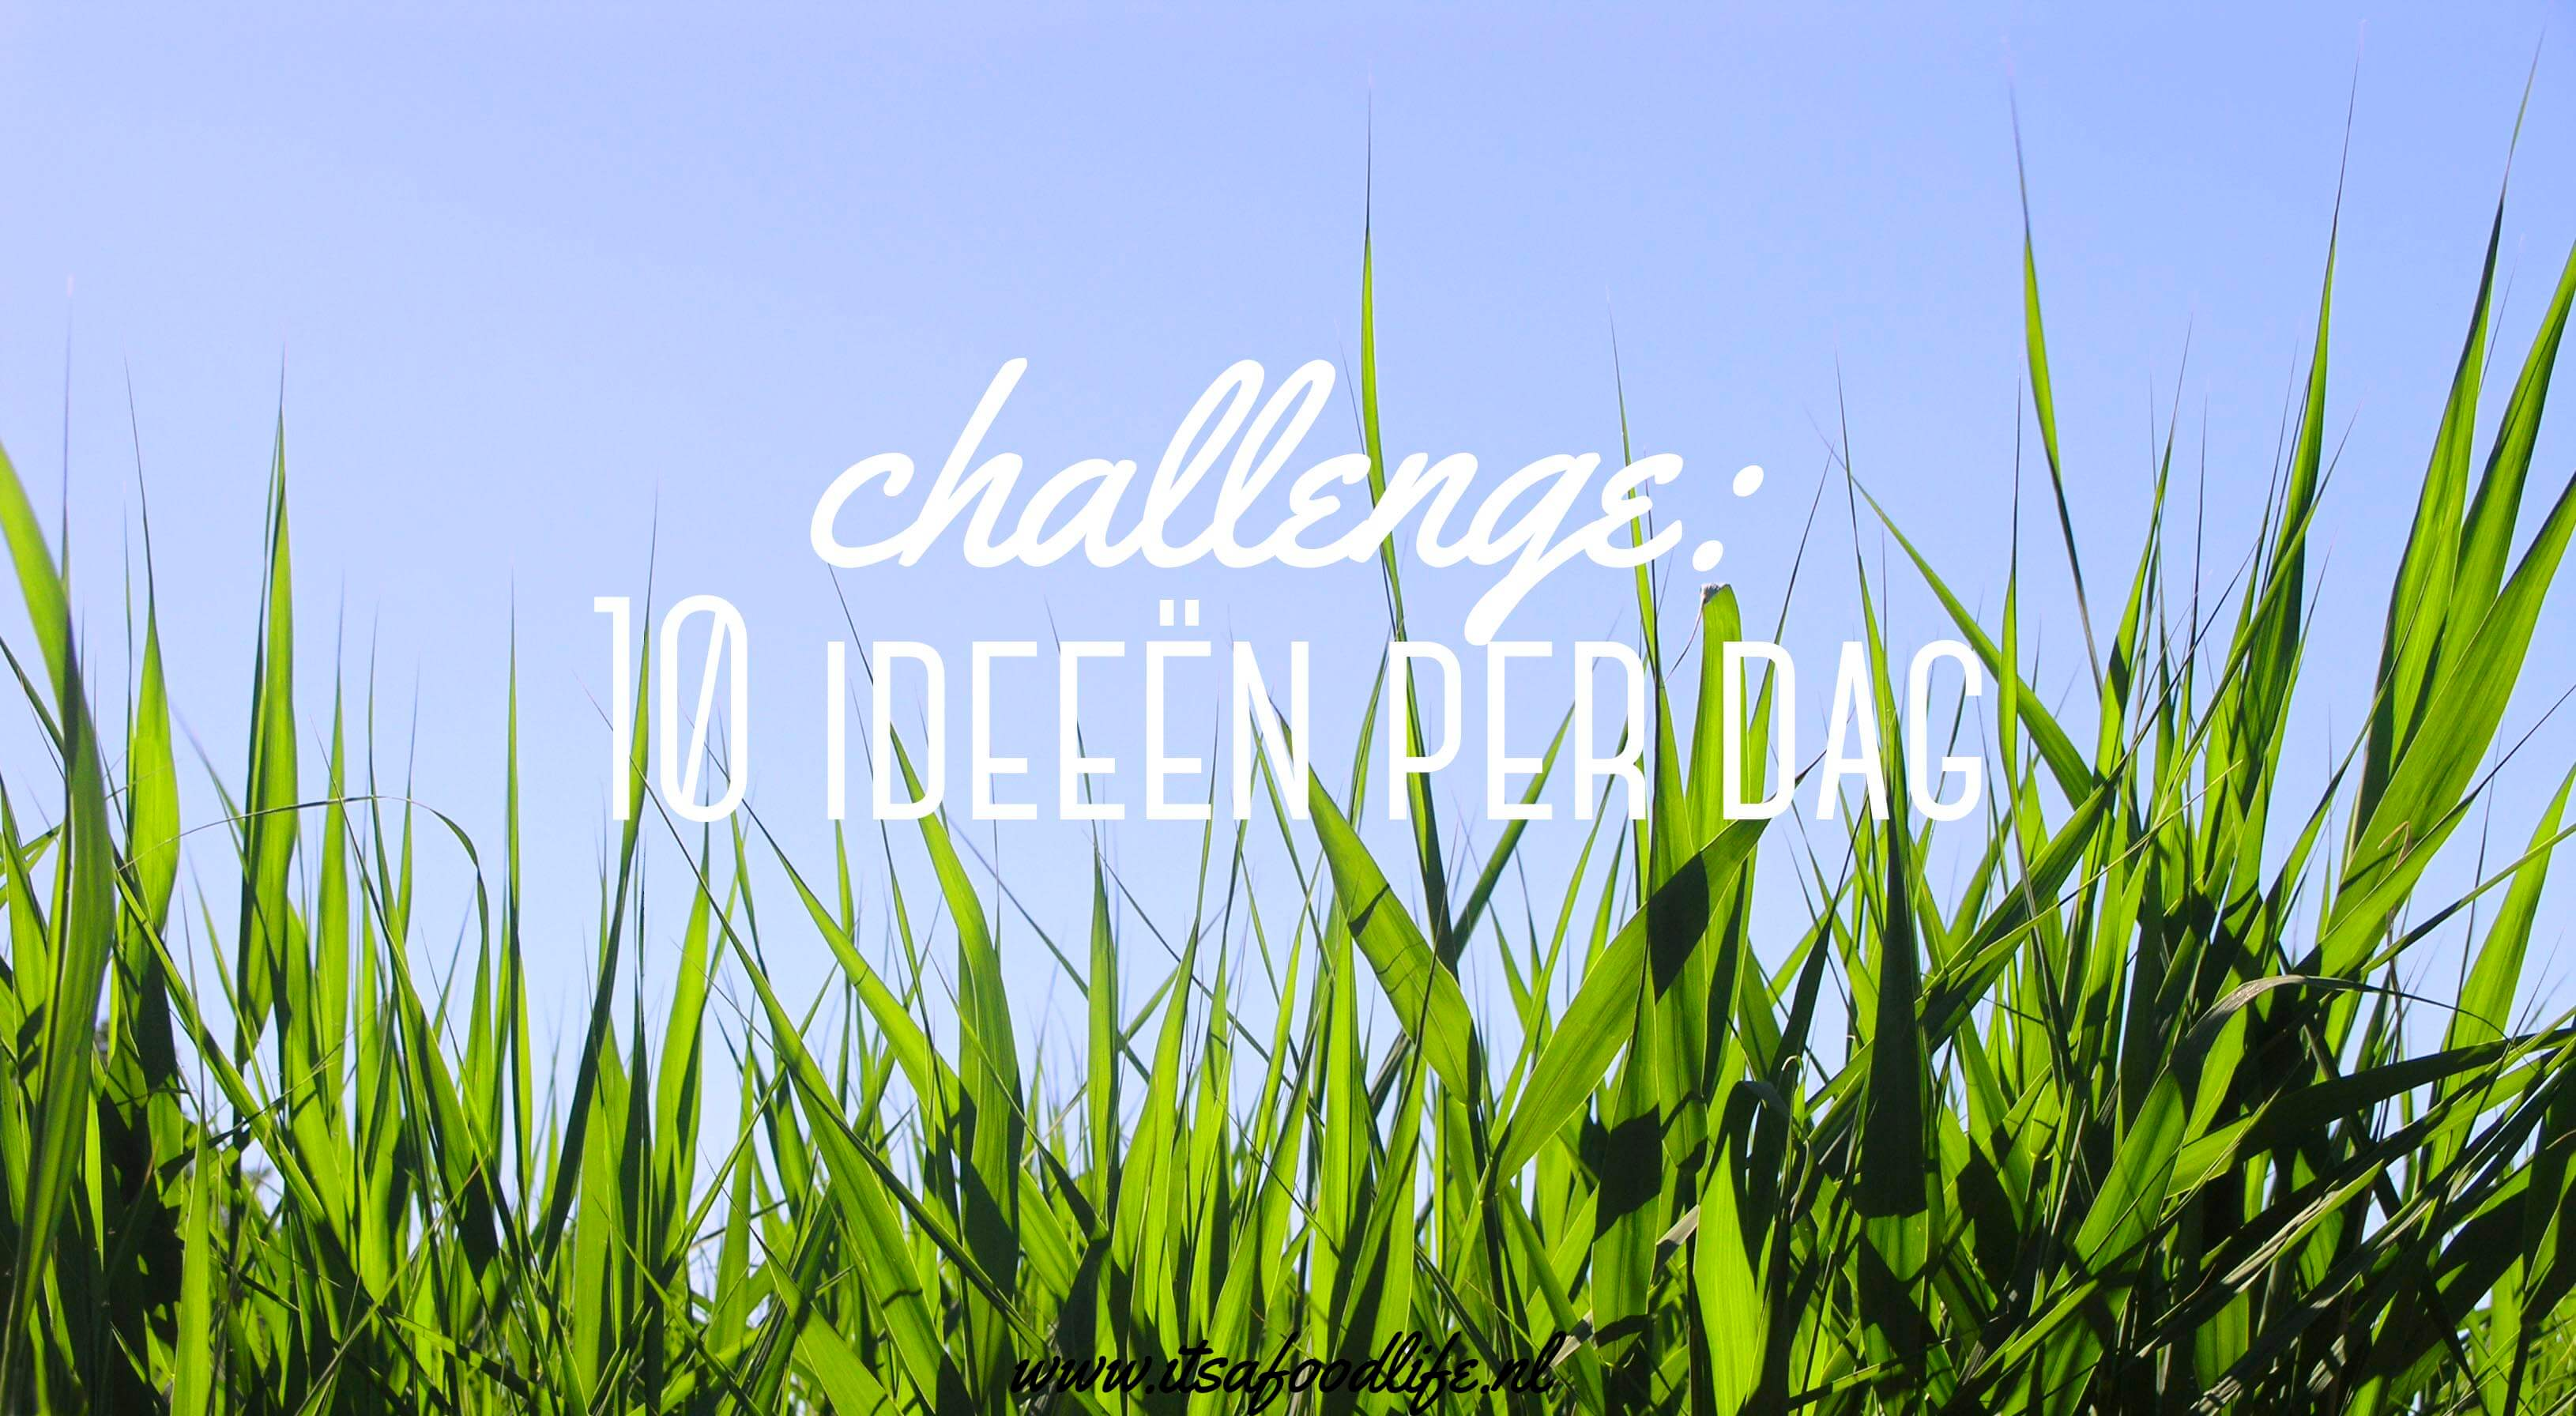 challenge 10 ideeën per dag | It's a Food Life